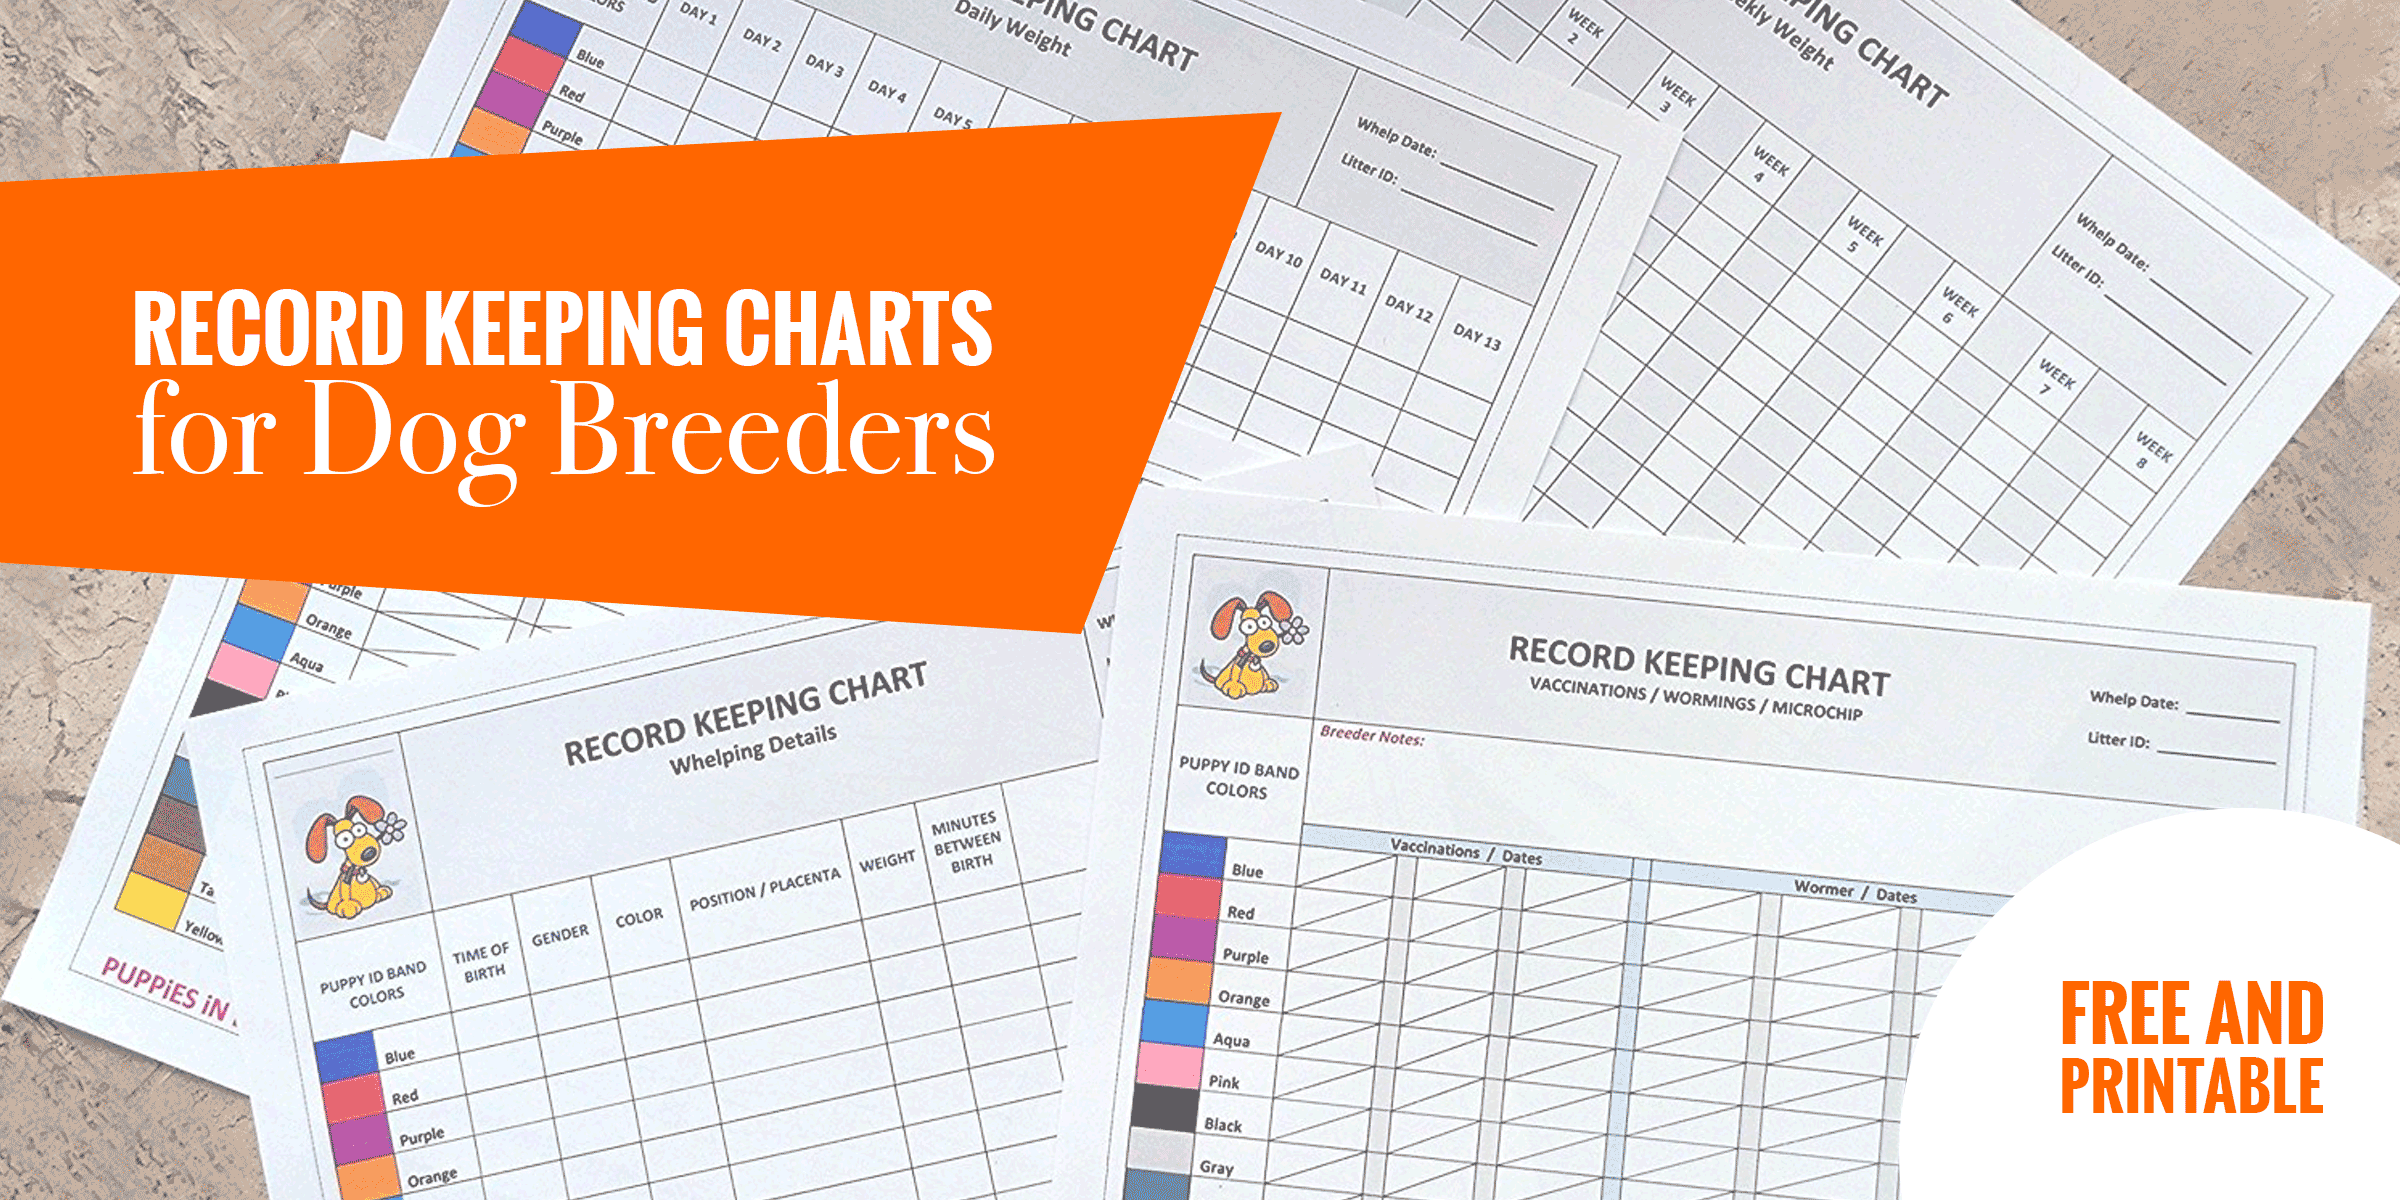 Record keeping charts for breeders free printable puppy forms puppy growth chart template record keeping charts for breeders free printable puppy forms geenschuldenfo Image collections